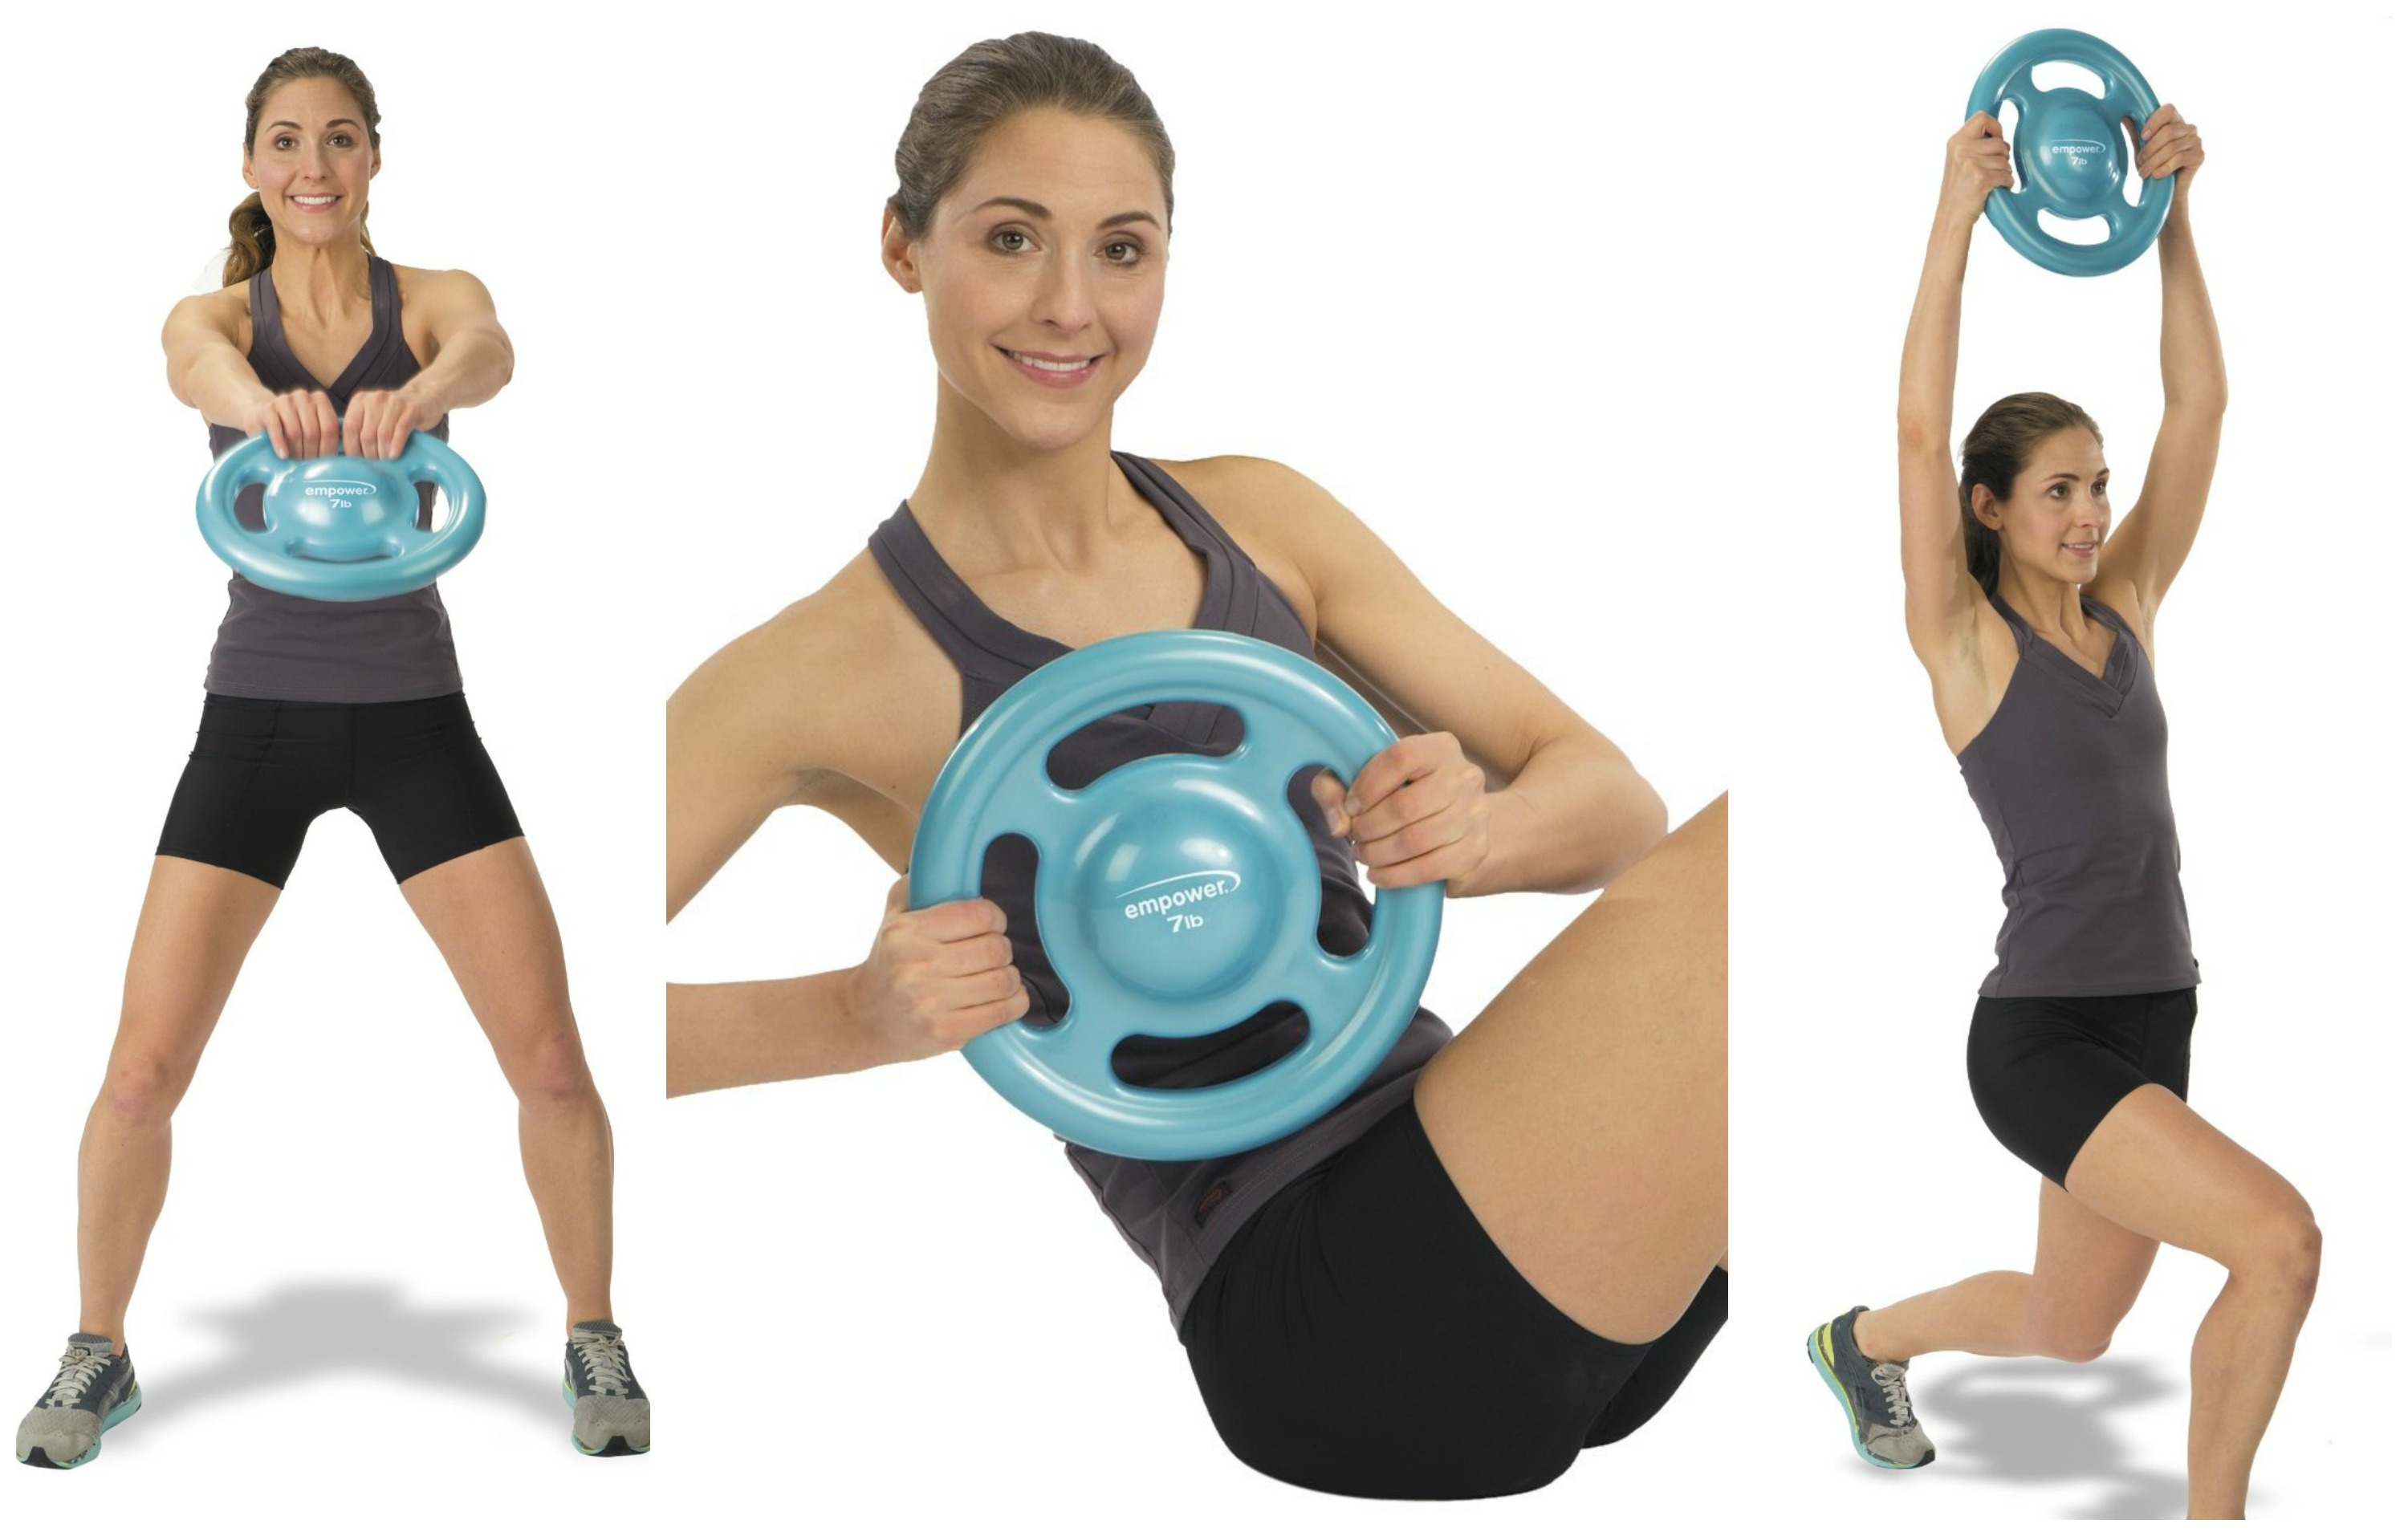 Fusion Fit Disc- Part Kettle Bell, Part Medicine Ball, Part Dumbell #ad